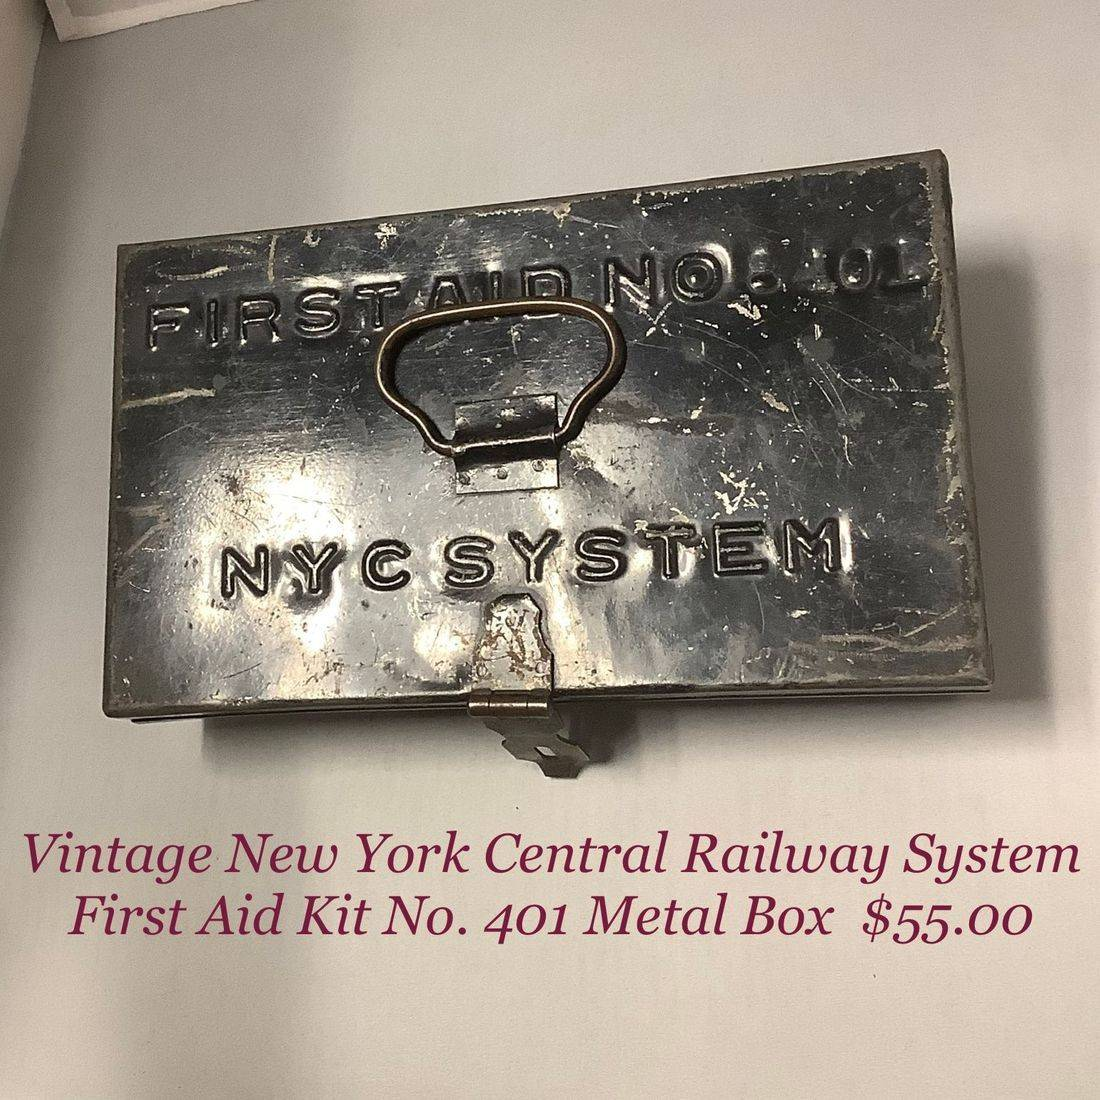 Vintage New York Central Railway System First Aid Box   $55.00